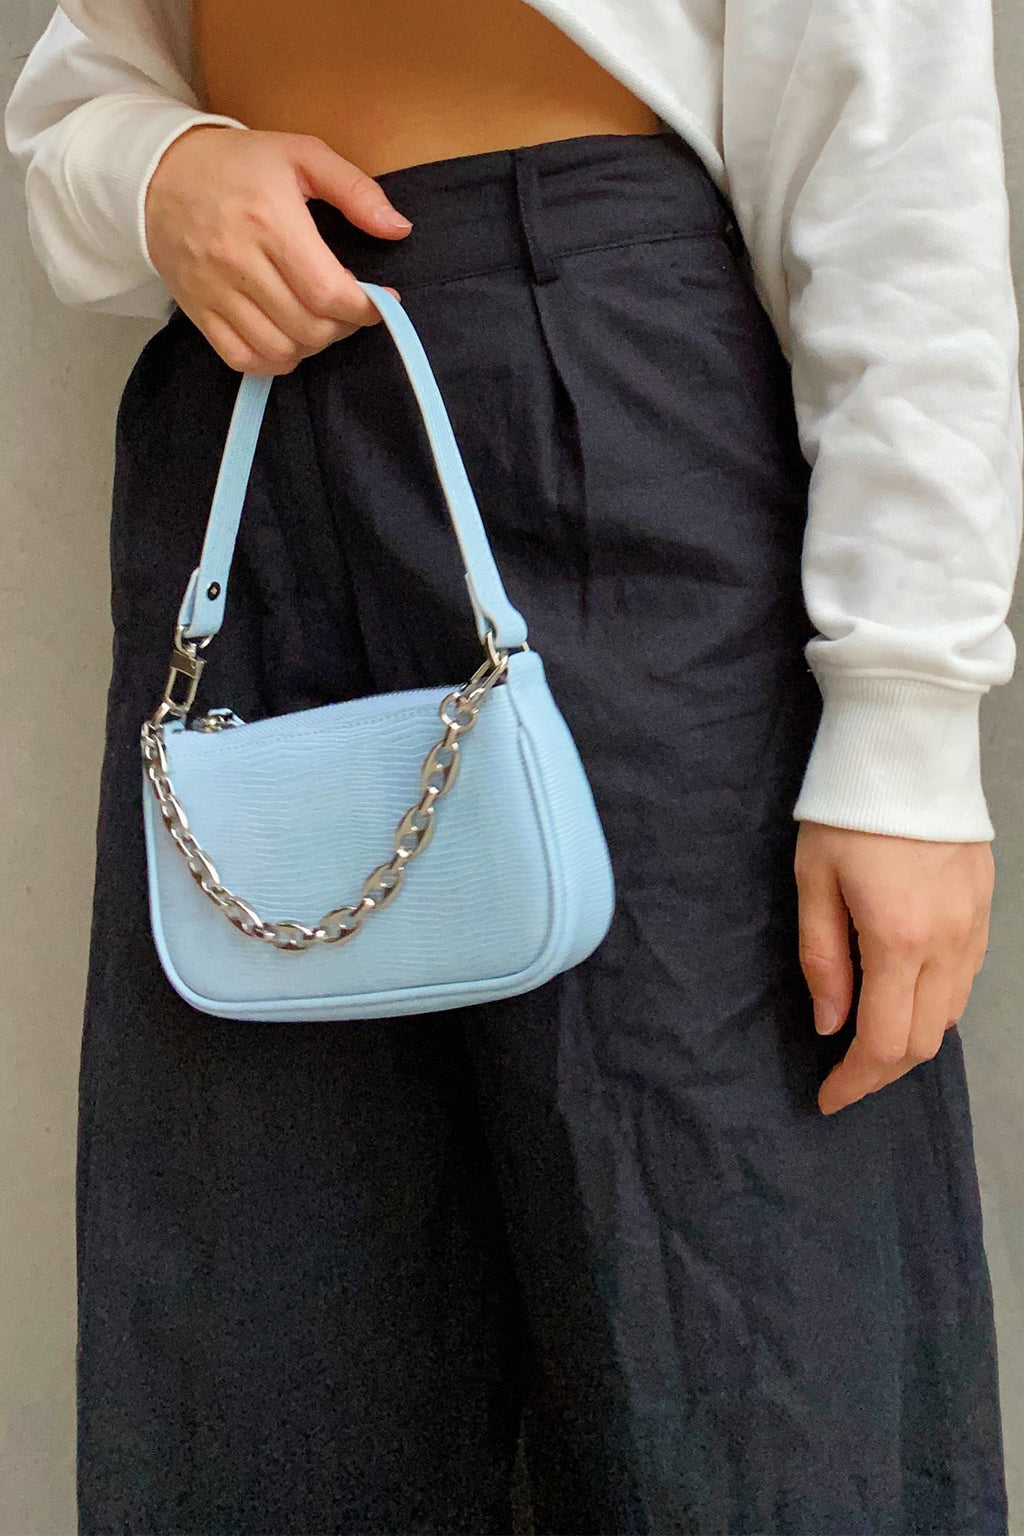 Locking Up Light Blue Snakeskin Mini Shoulder Bag with Chain